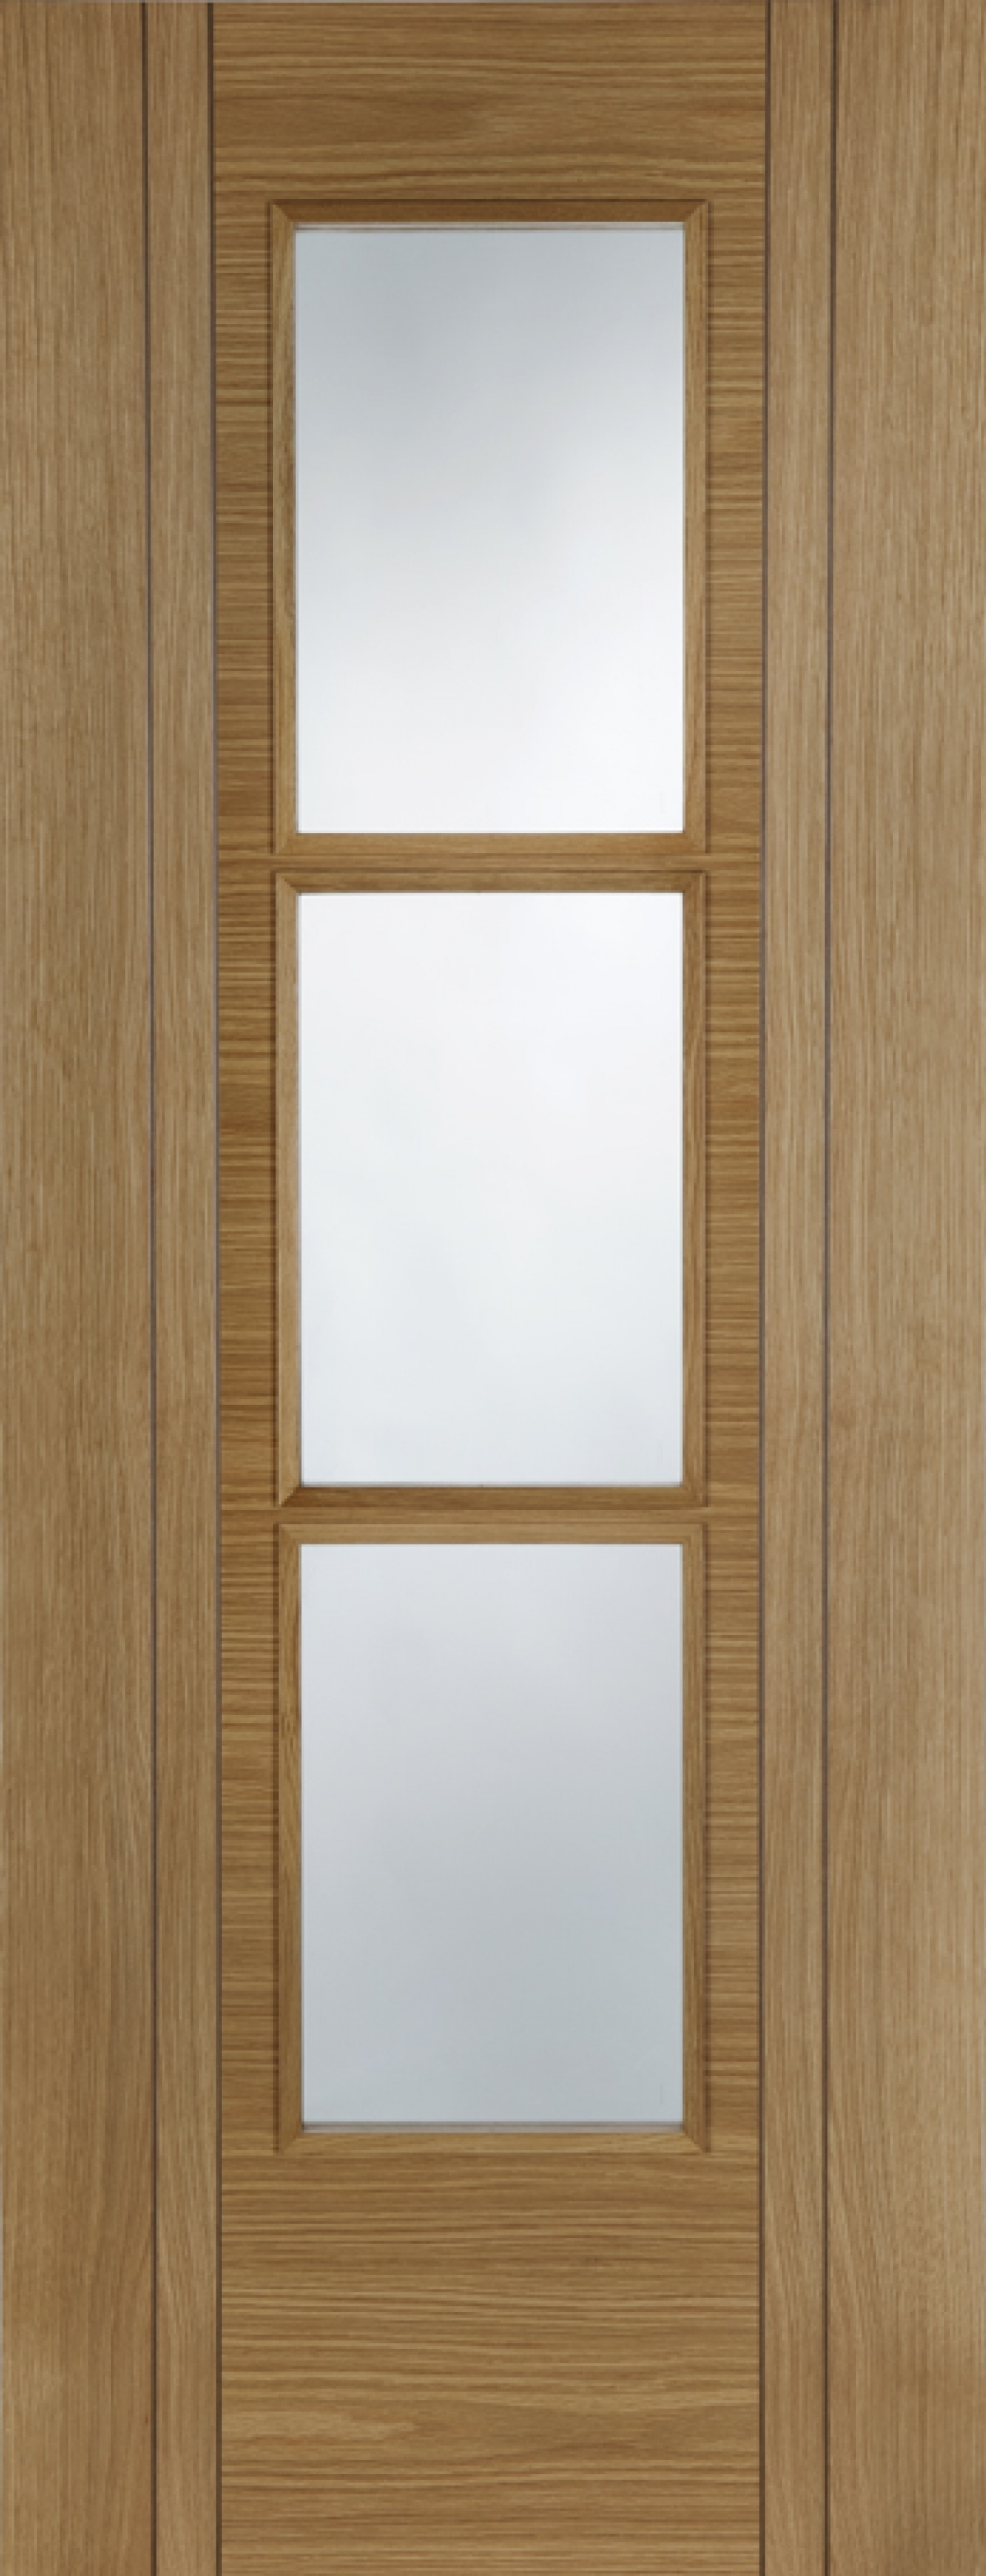 Oak Capri 3l - Prefinished